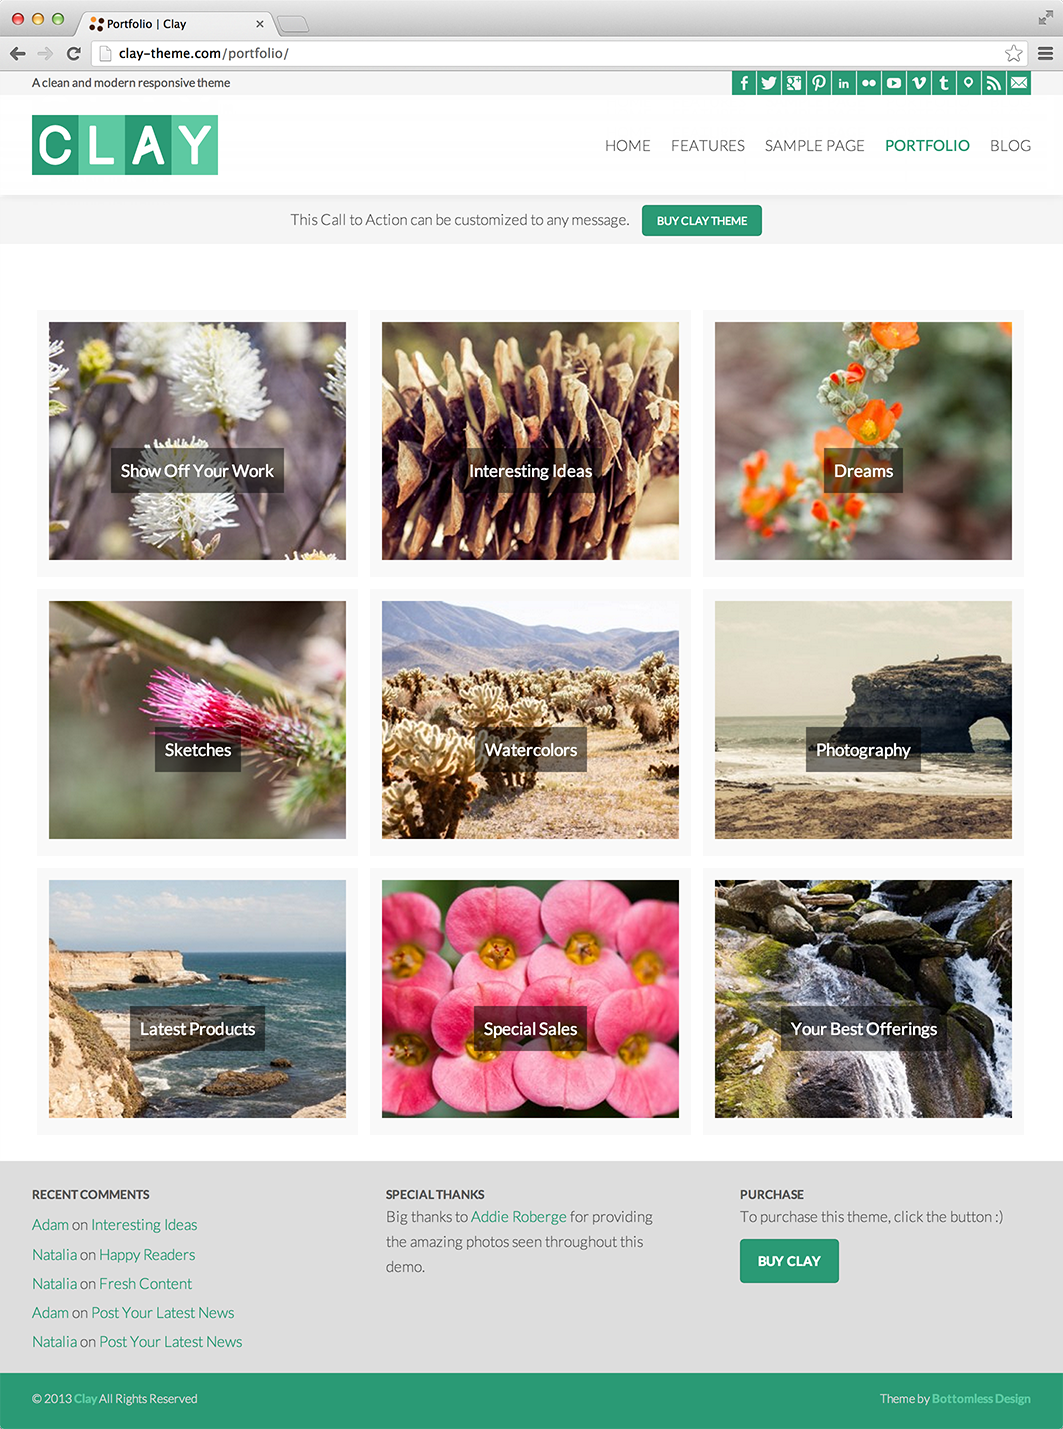 Clay - A Responsive All Natural WordPress Theme - Portfolio|Tumblr-Style